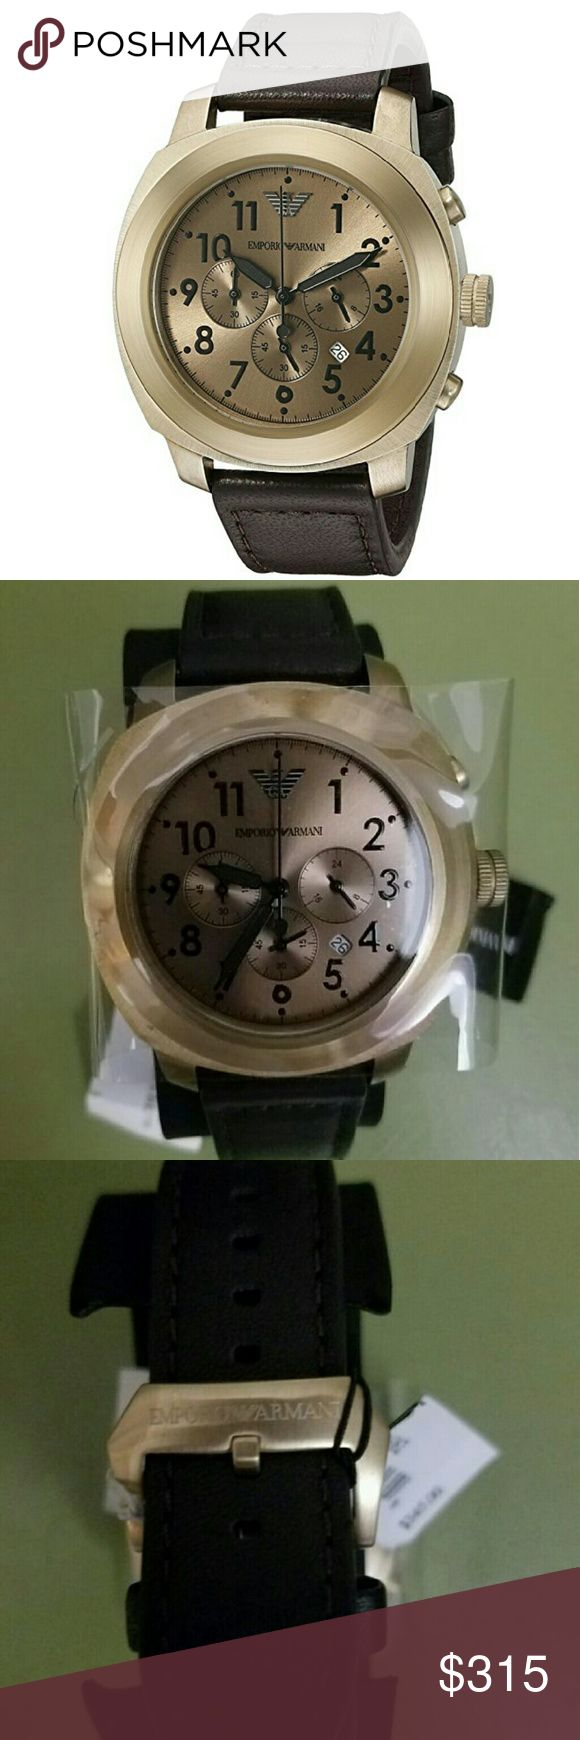 NWT Emporio Armani Sportivo Beige watch NWT Emporio Armani Beige Dial Leather Strap Chronograph Men's Watch  Firm price  $315.00 . AUTHENTIC WATCH  . AUTHENTIC BOX  . AUTHENTIC MANUAL   SHIPPING  PLEASE ALLOW FEW BUSINESS DAYS FOR ME TO SHIPPED IT OFF.I HAVE TO GET IT FROM MY WAREHOUSE    THANK YOU FOR YOUR UNDERSTANDING. emporio Armani  Accessories Watches